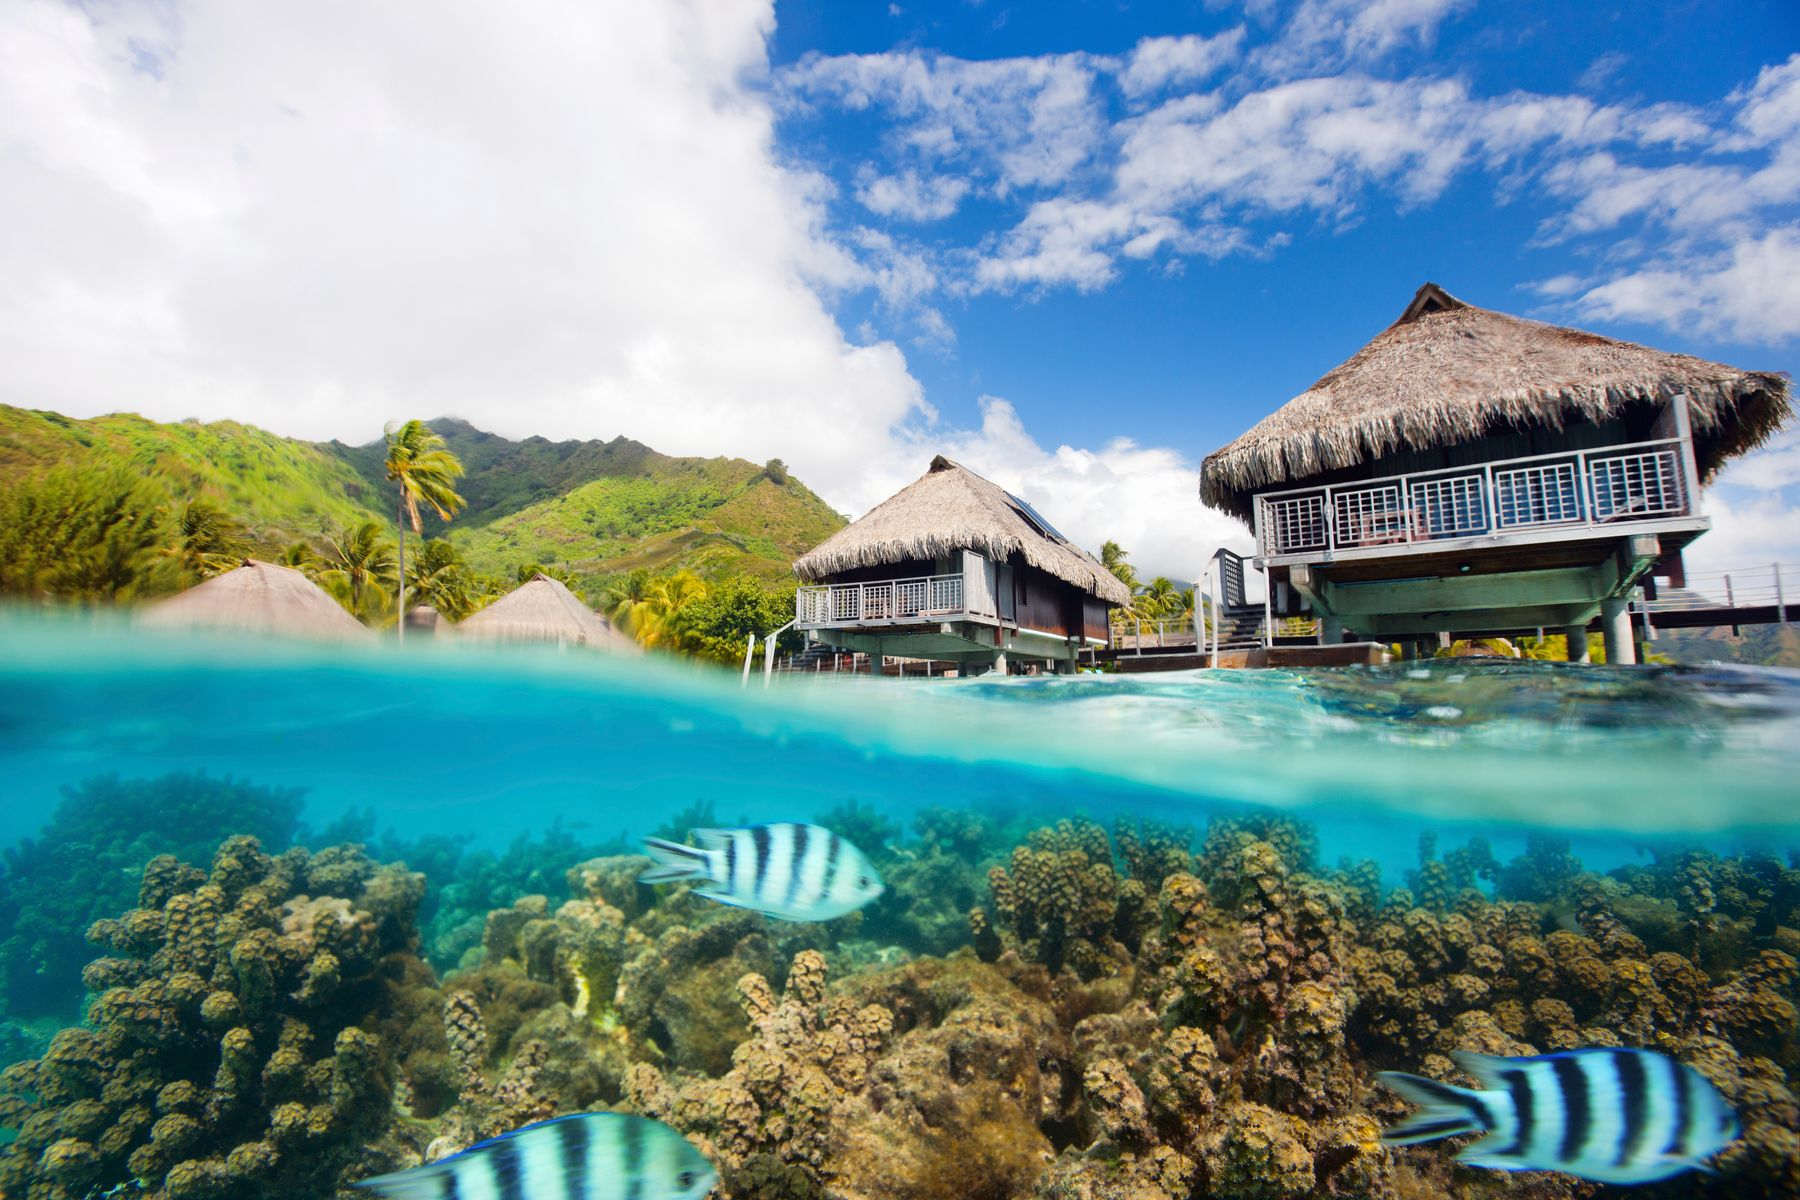 Underwater view of coral and fish under a hotel